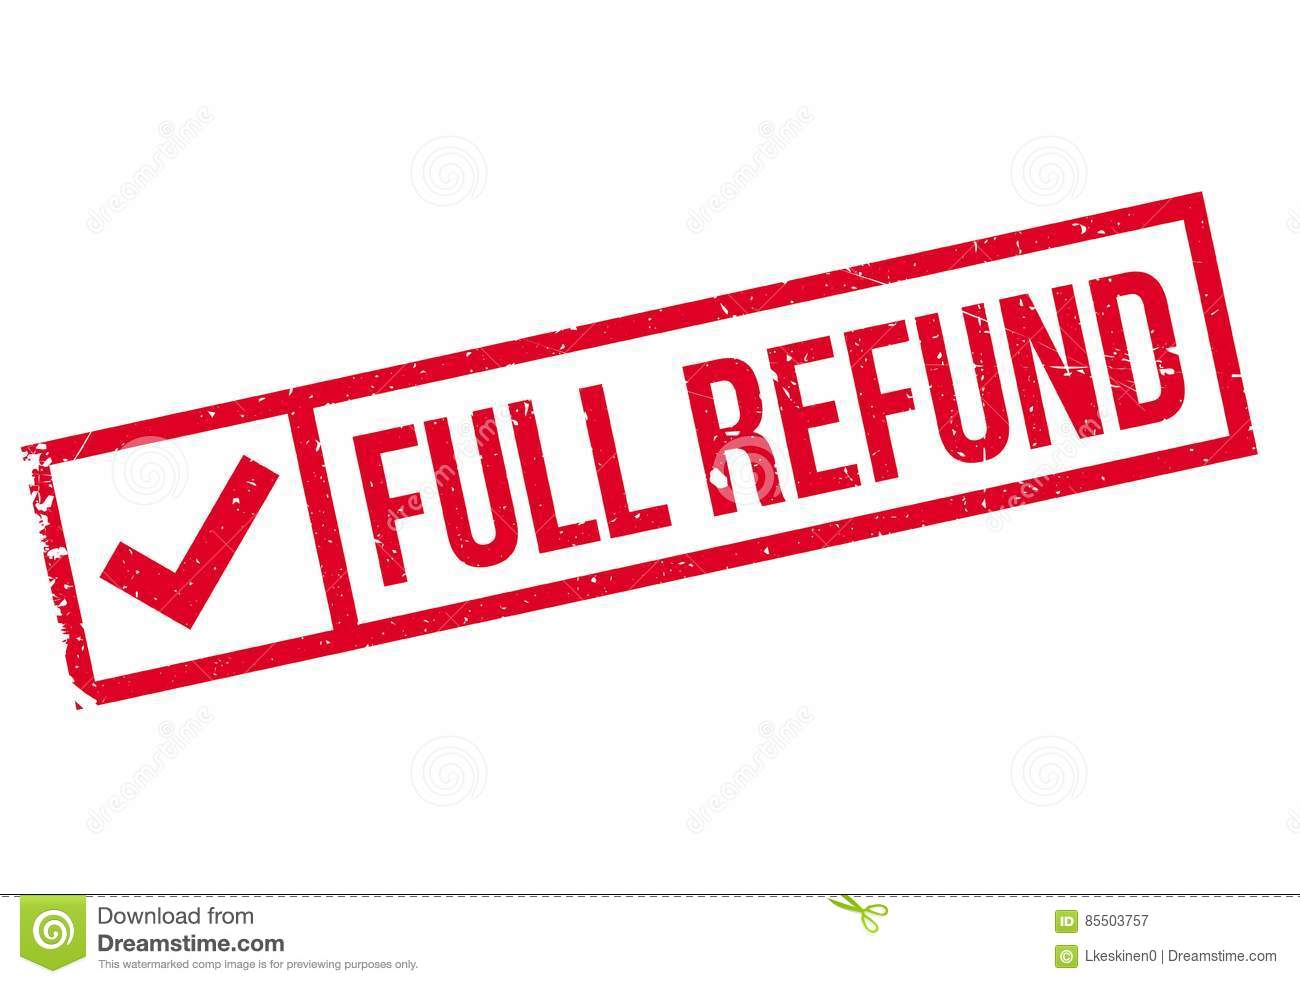 Full Refund Stamp. Grunge, Back.-Full refund stamp. Grunge, back.-3